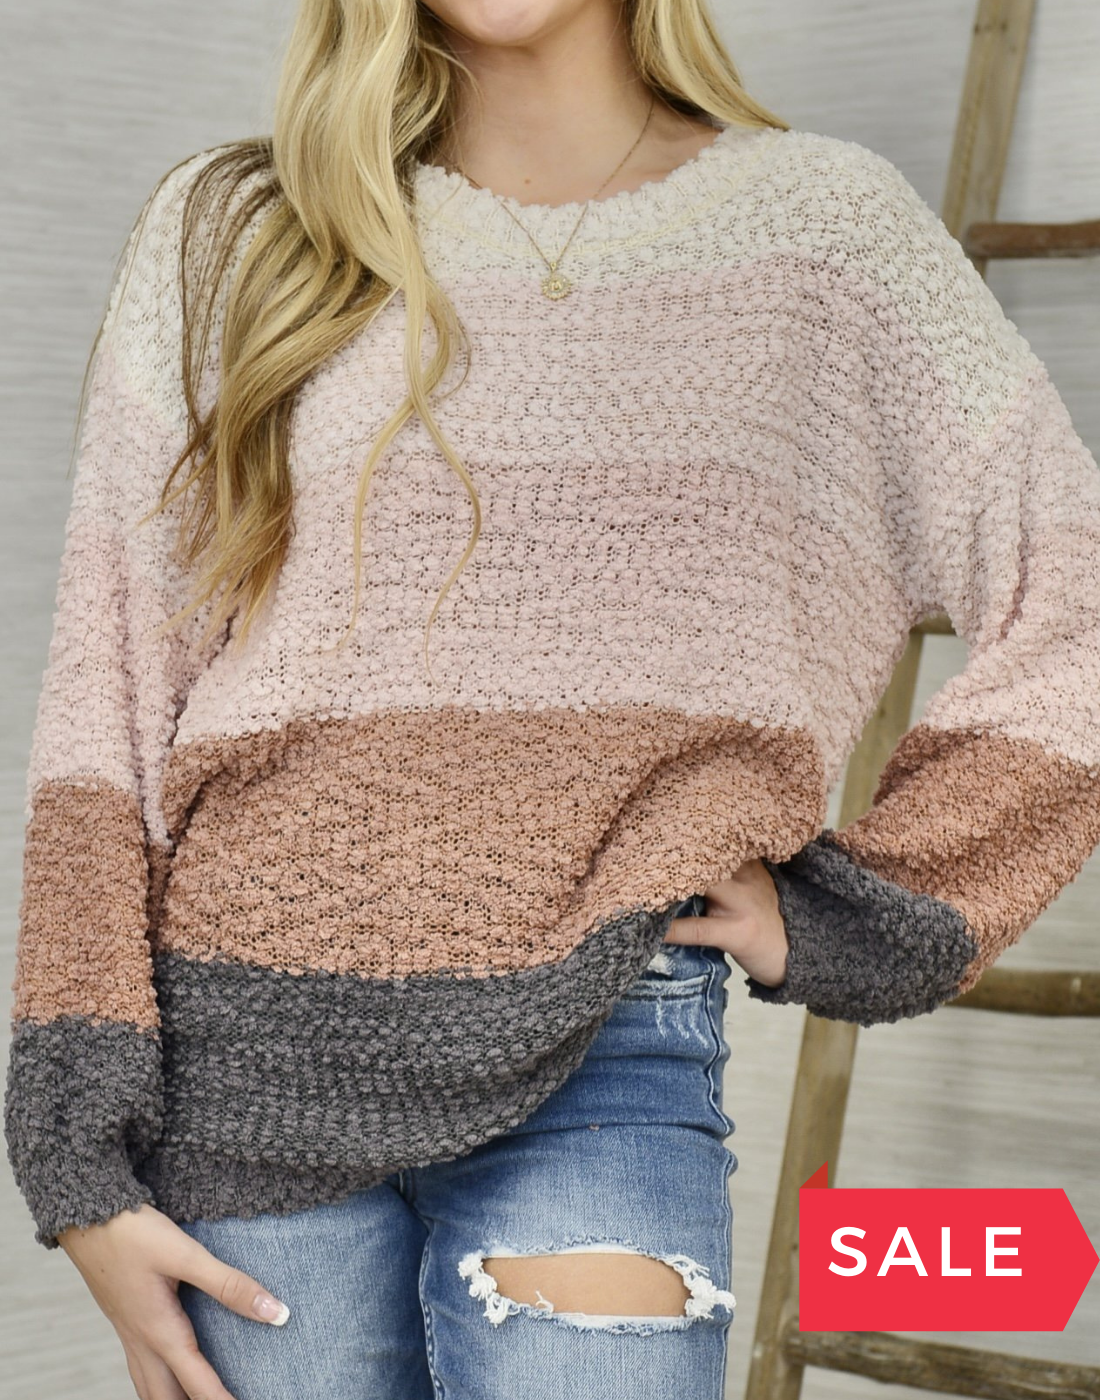 SALE: SEASONED WITH STYLE SWEATER - ORIG $59